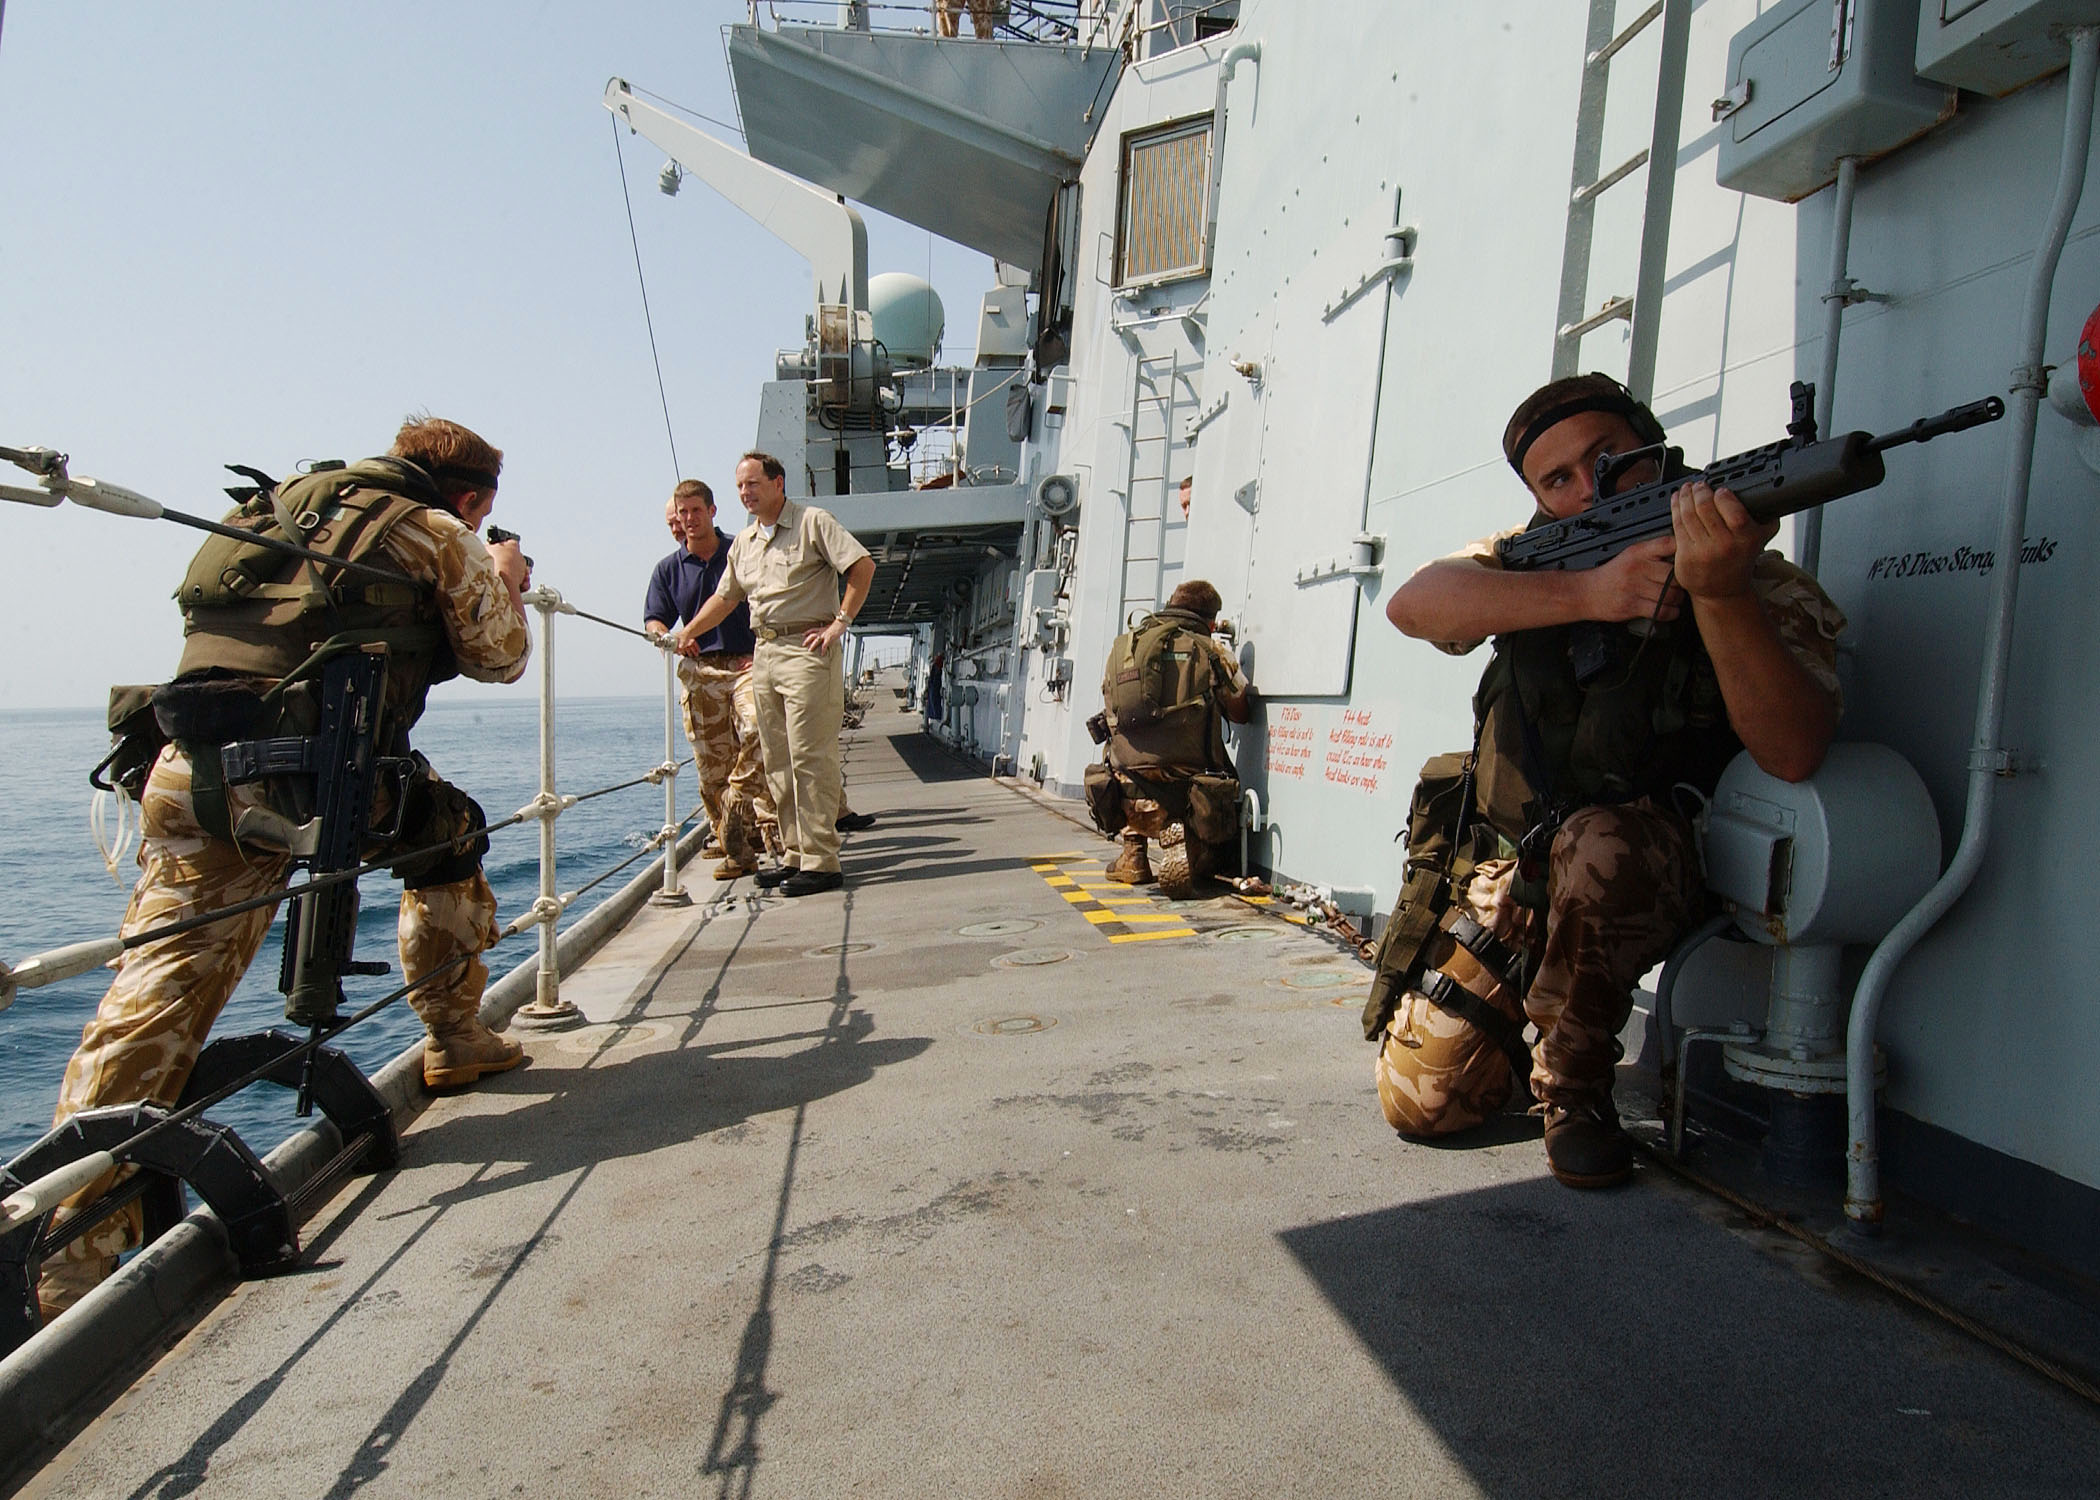 Boarding_Procedures_demonstrated_by_the_British_Royal_Marines.jpg